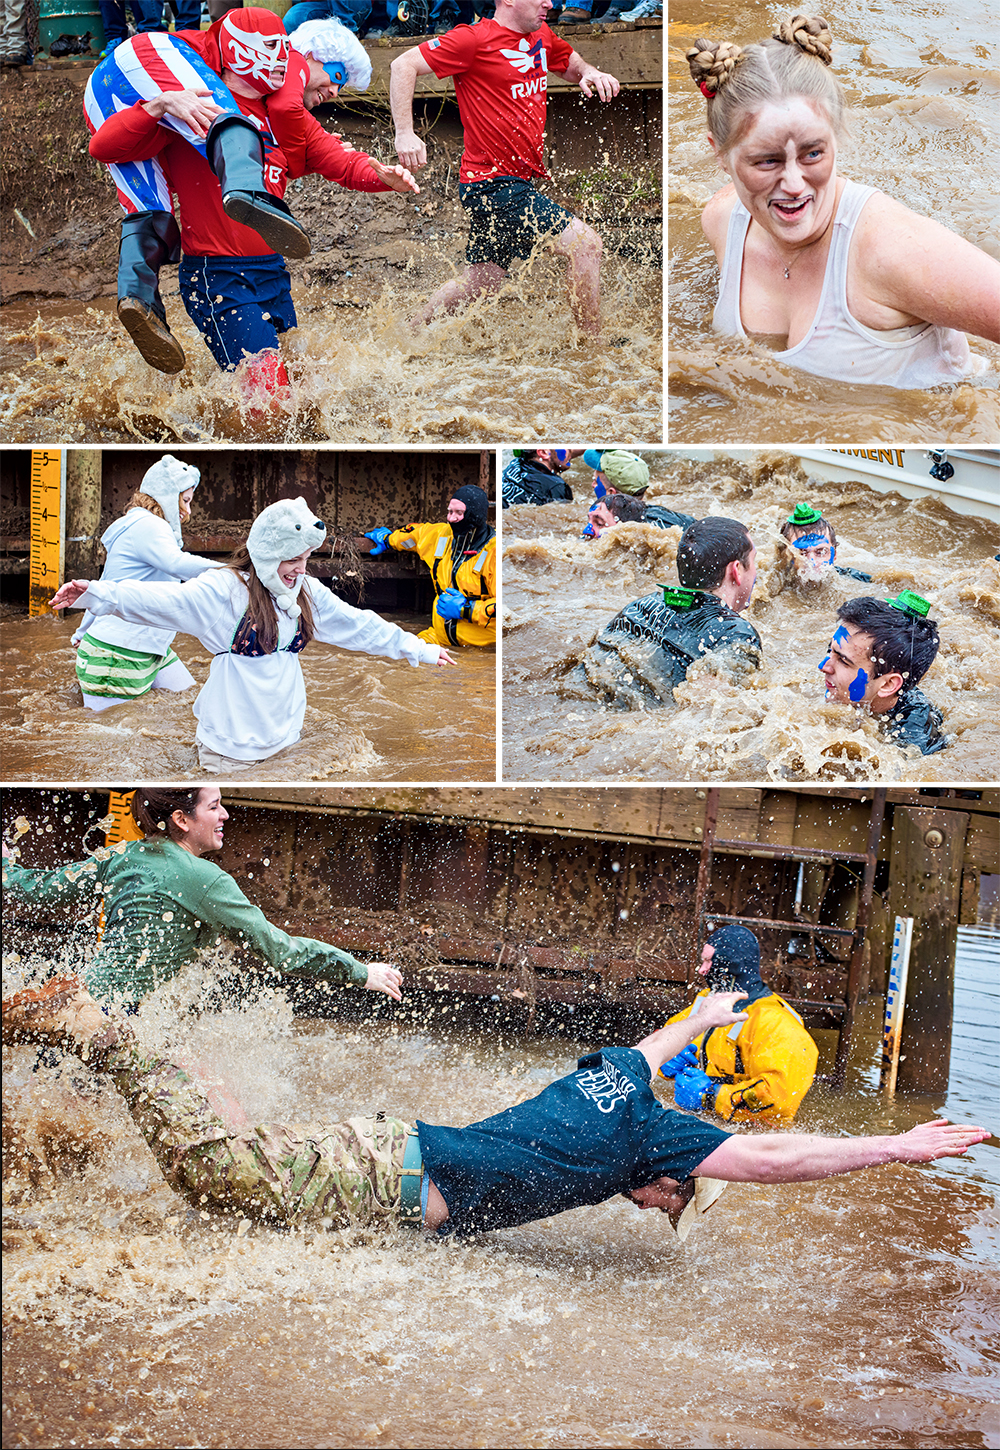 Siobhan Young Photography EOD Wounded Warrior Polar Bear Plunge (3)